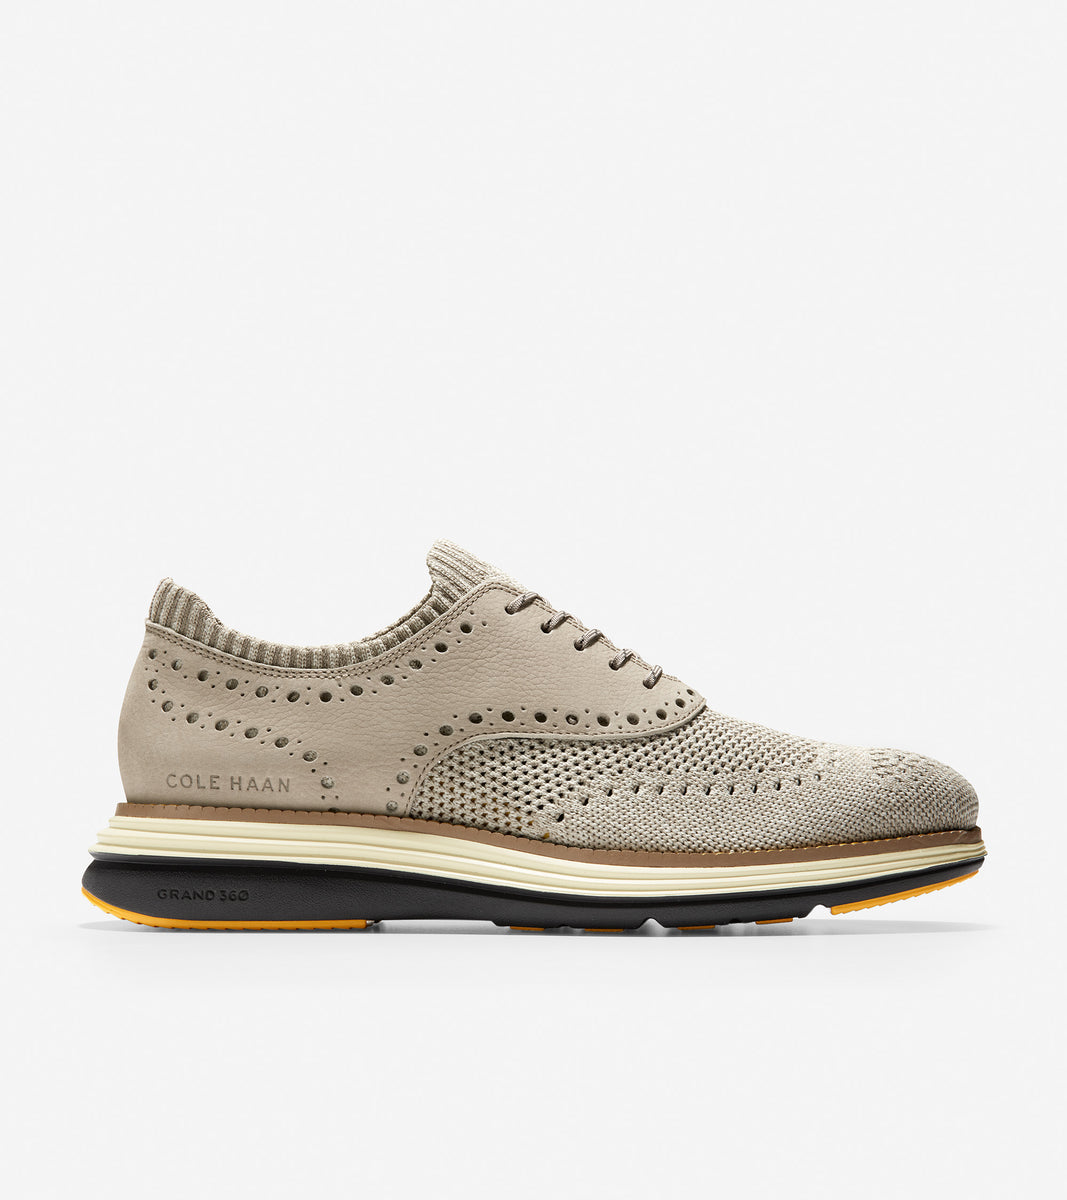 ØriginalGrand Ultra Oxford